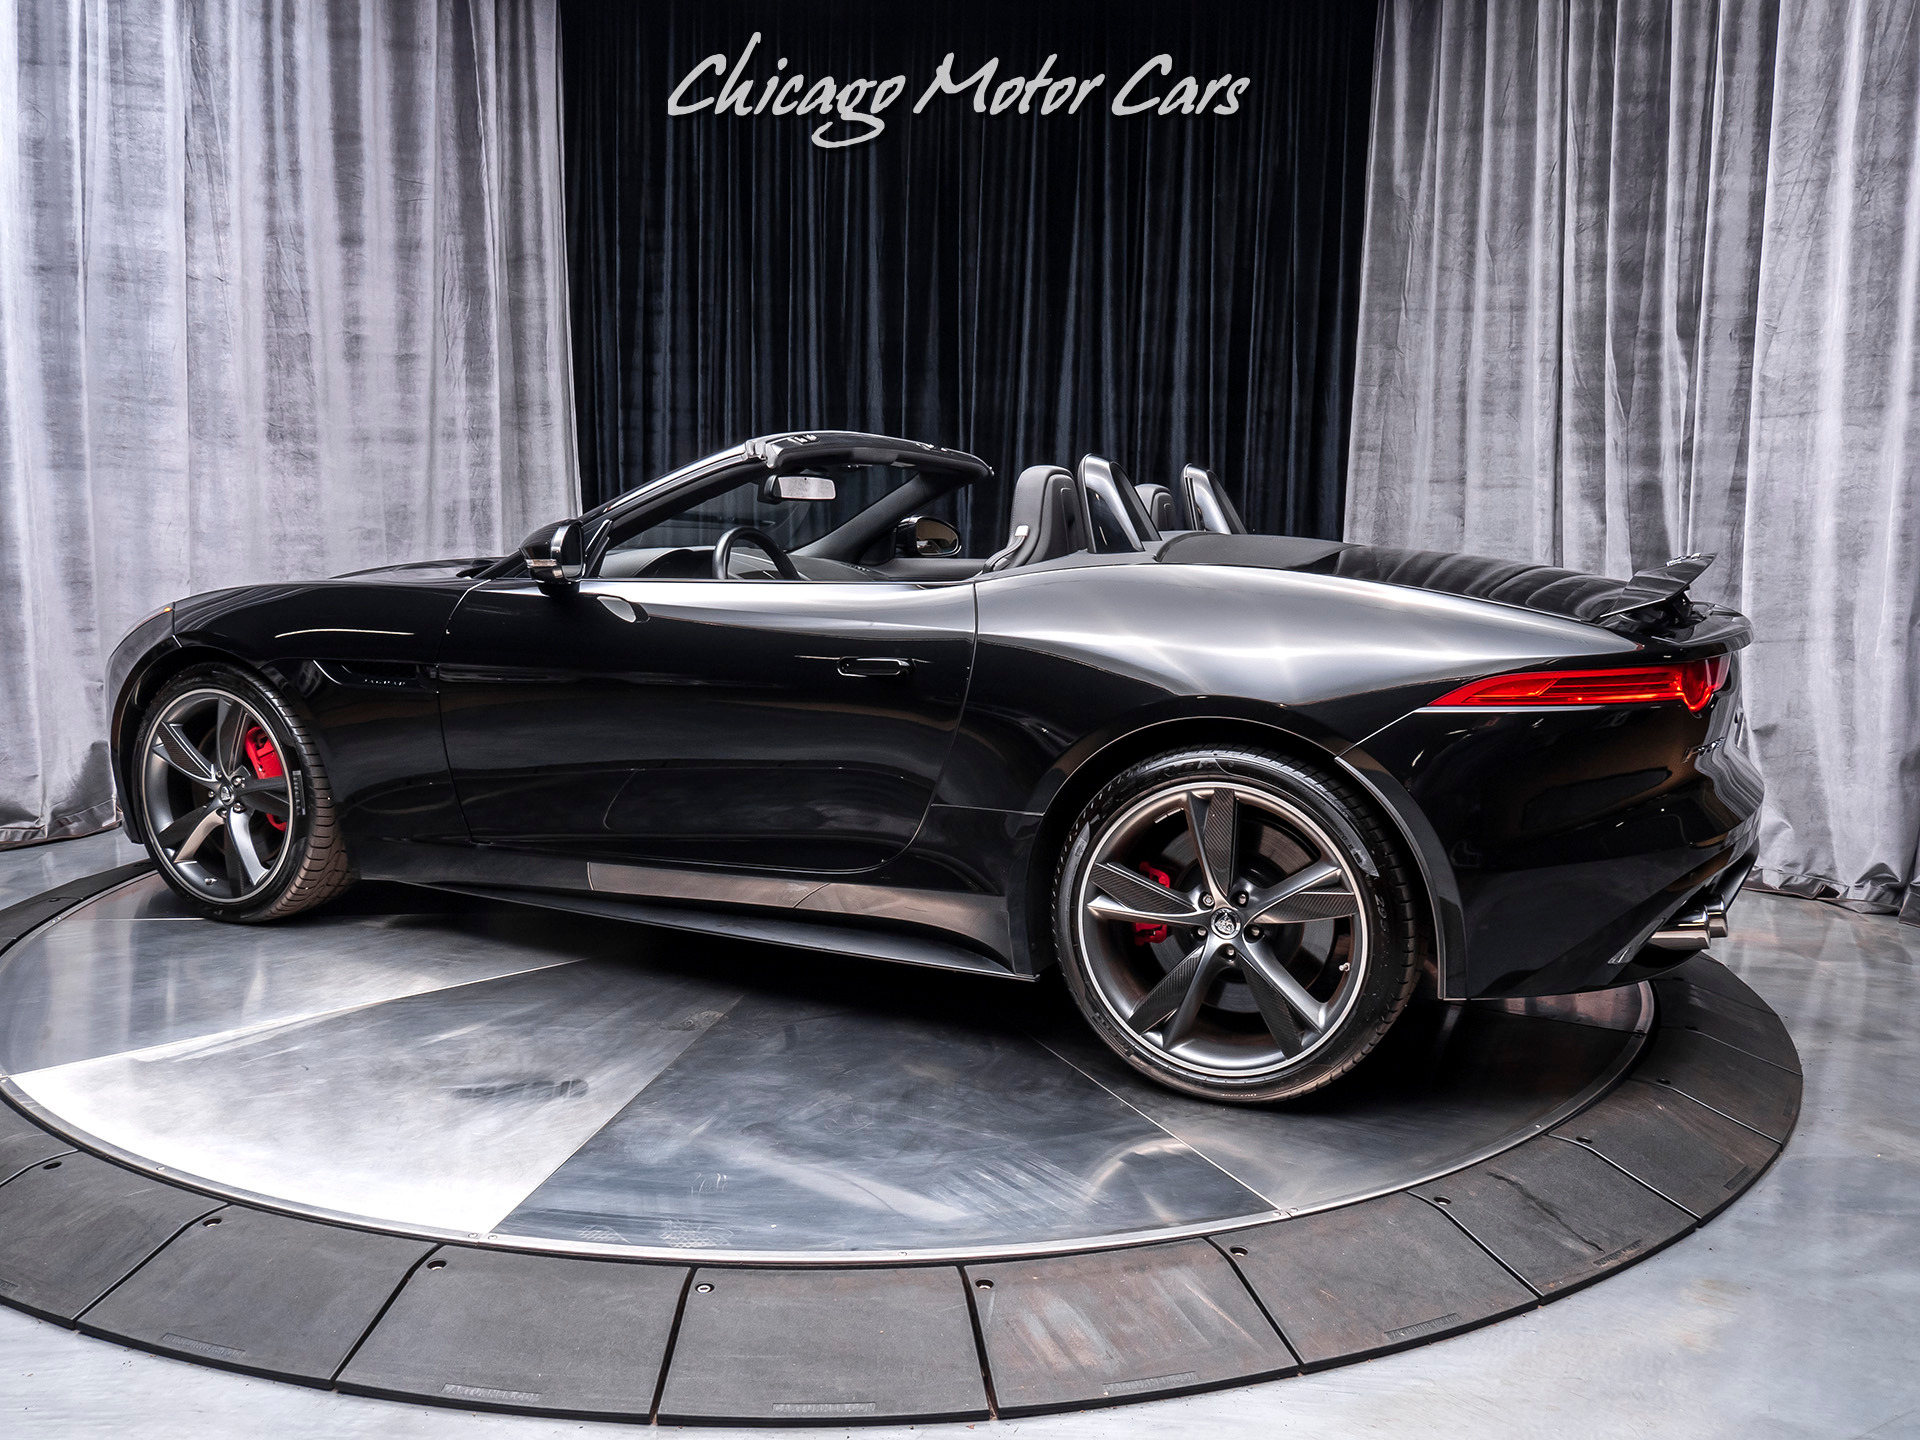 Used 2014 Jaguar F-TYPE V8 S Convertible For Sale (Special Pricing)   Chicago Motor Cars Stock ...